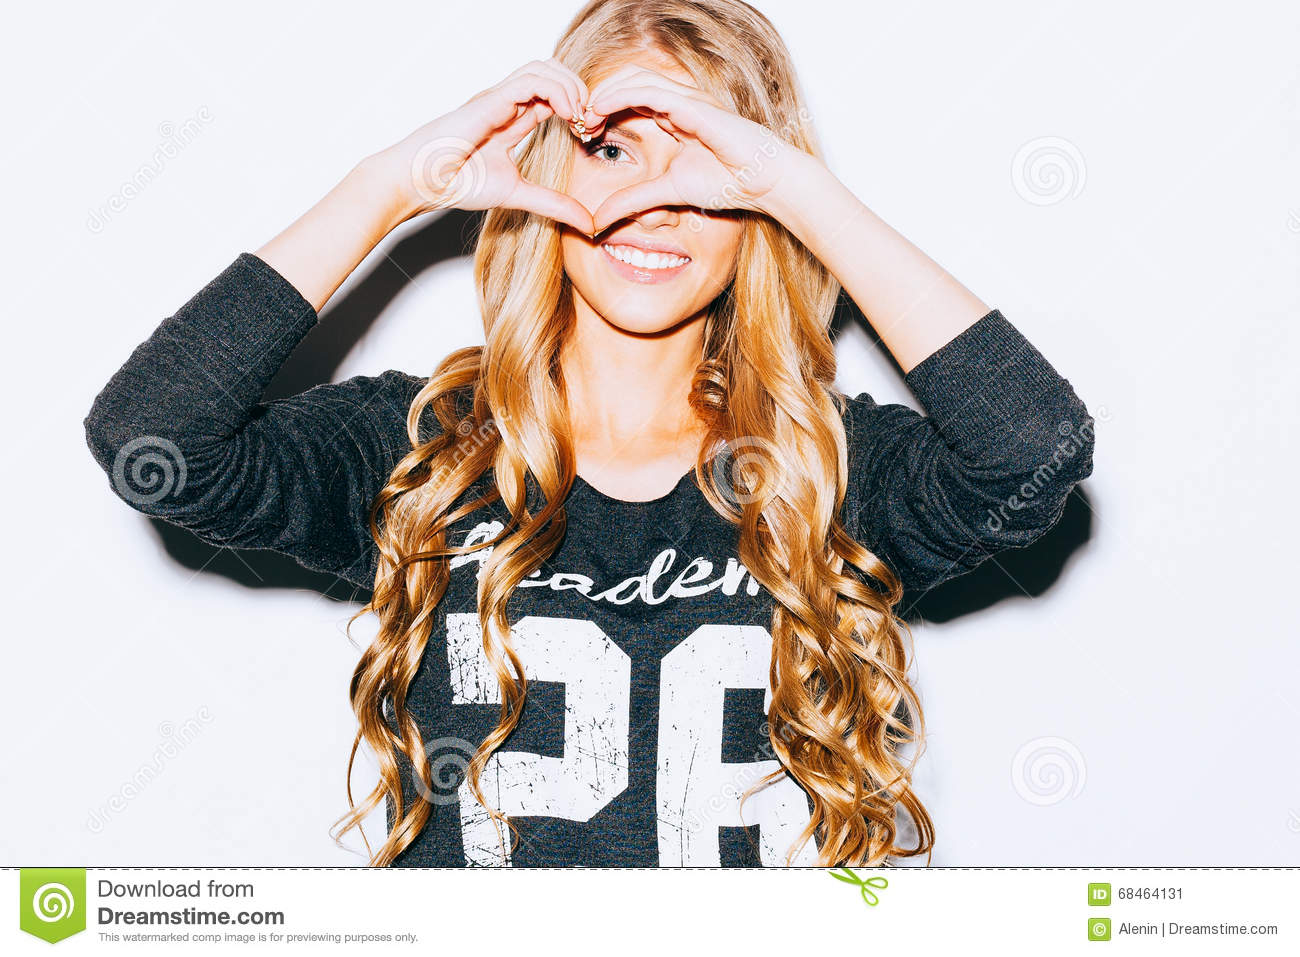 Love. Closeup portrait smiling happy young woman with long blon hair, making heart sign, symbol with hands white wall background.